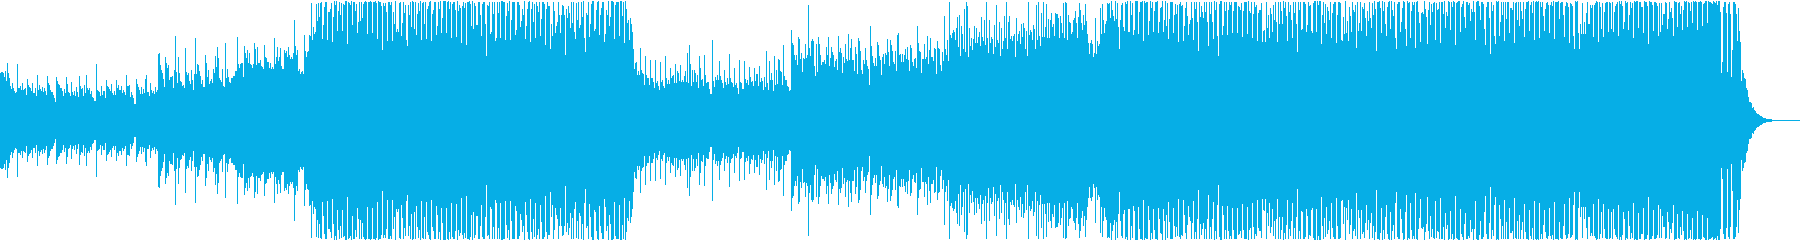 EDM that everyone can fly high in the sky's reproduced waveform